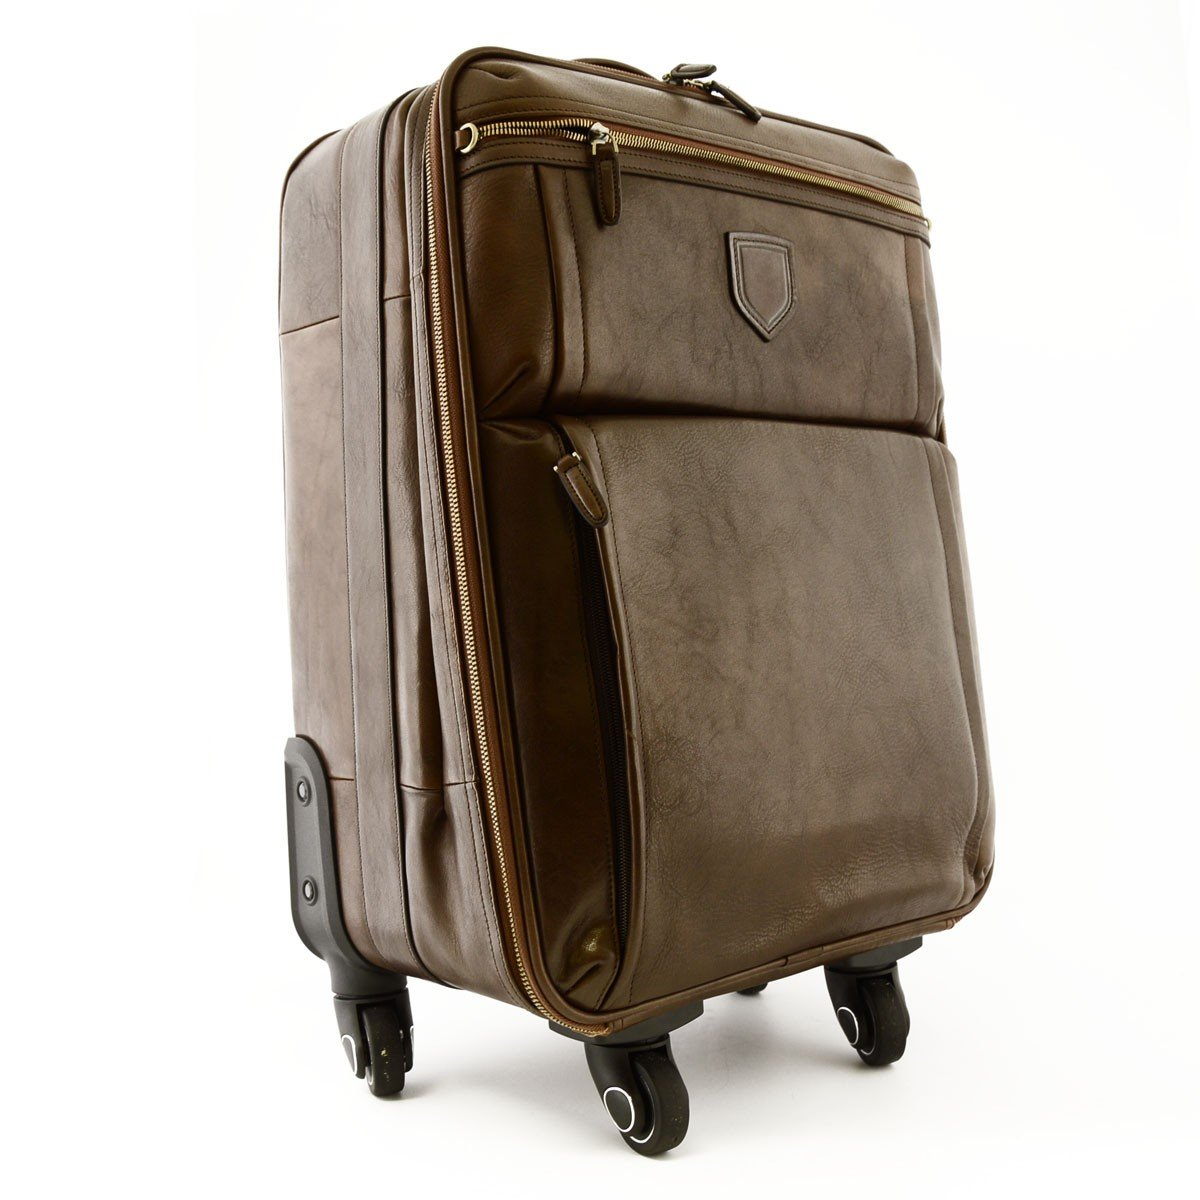 Made In Italy Genuine Leather Travel Trolley With 4 Multi Directional Wheels Color Dark Brown - Travel Bag B01FXSAU3K